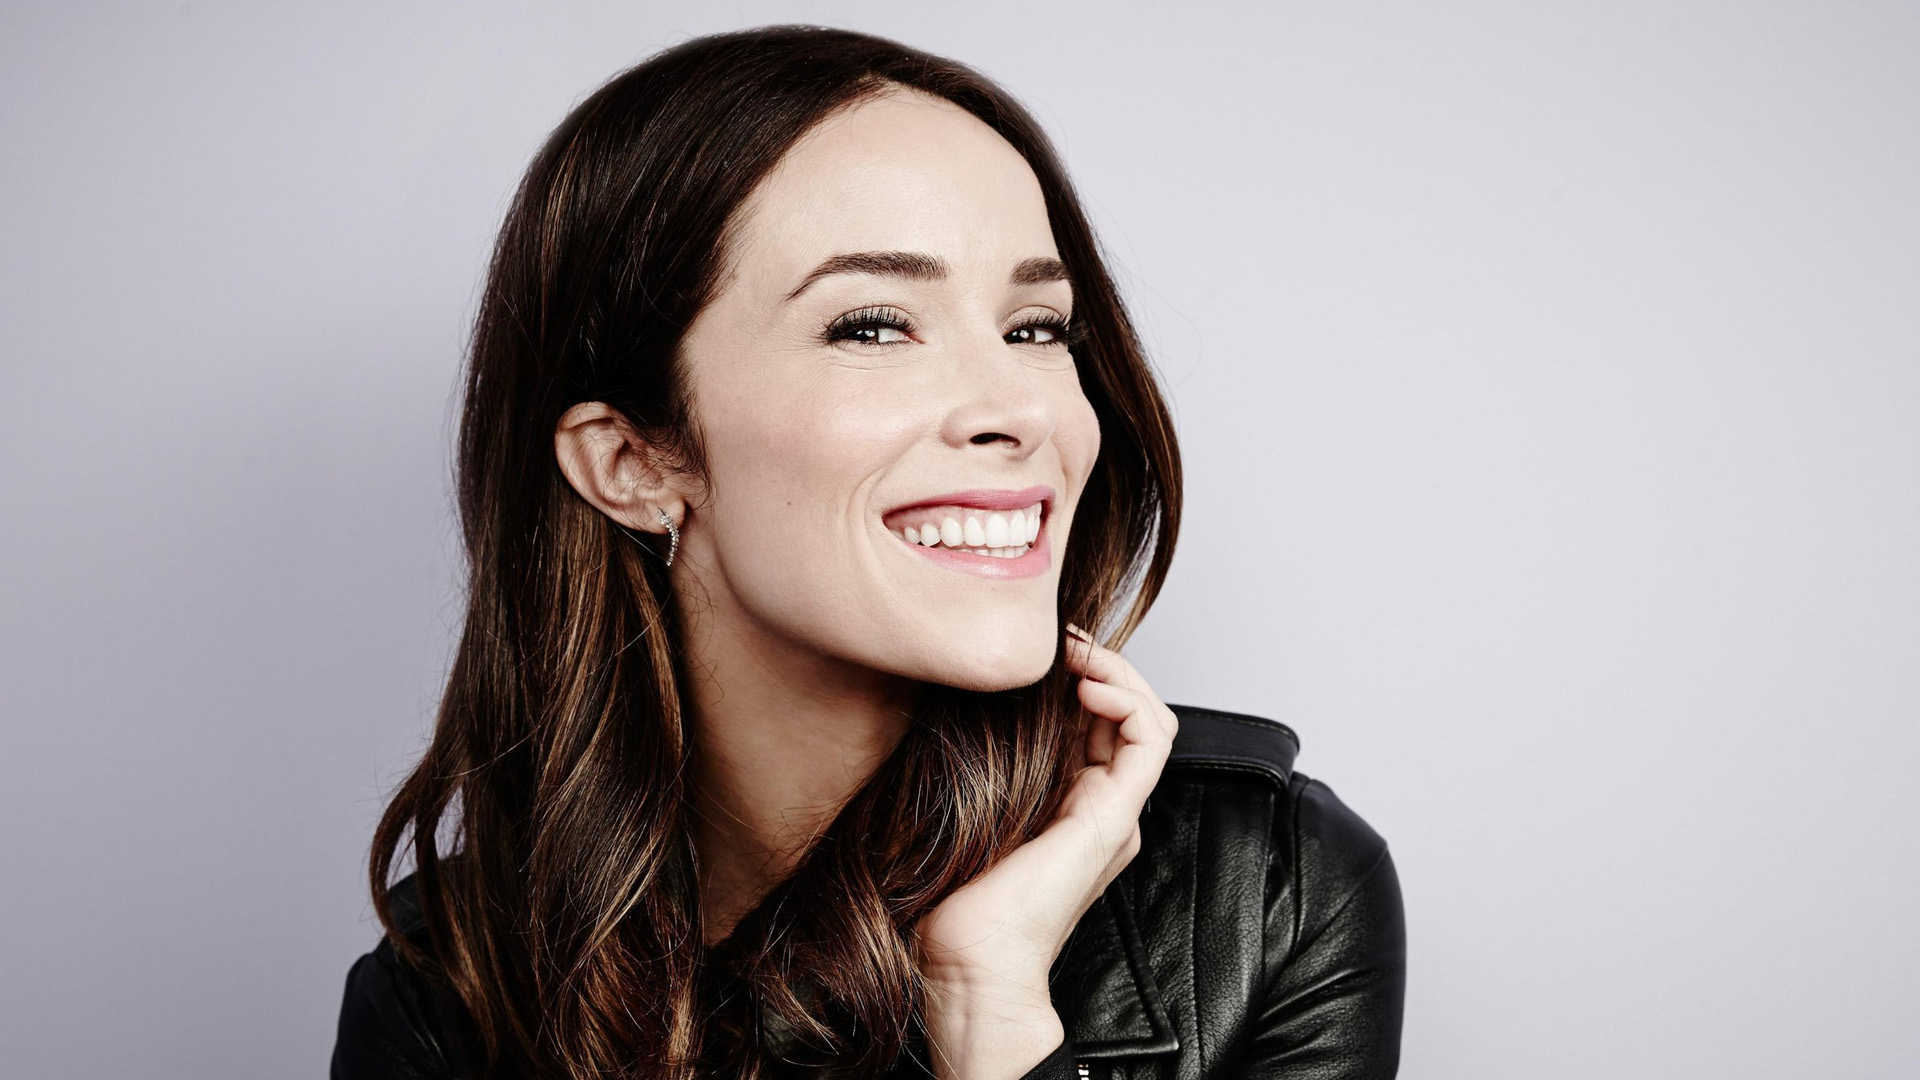 1920x1080 - Abigail Spencer Wallpapers 7